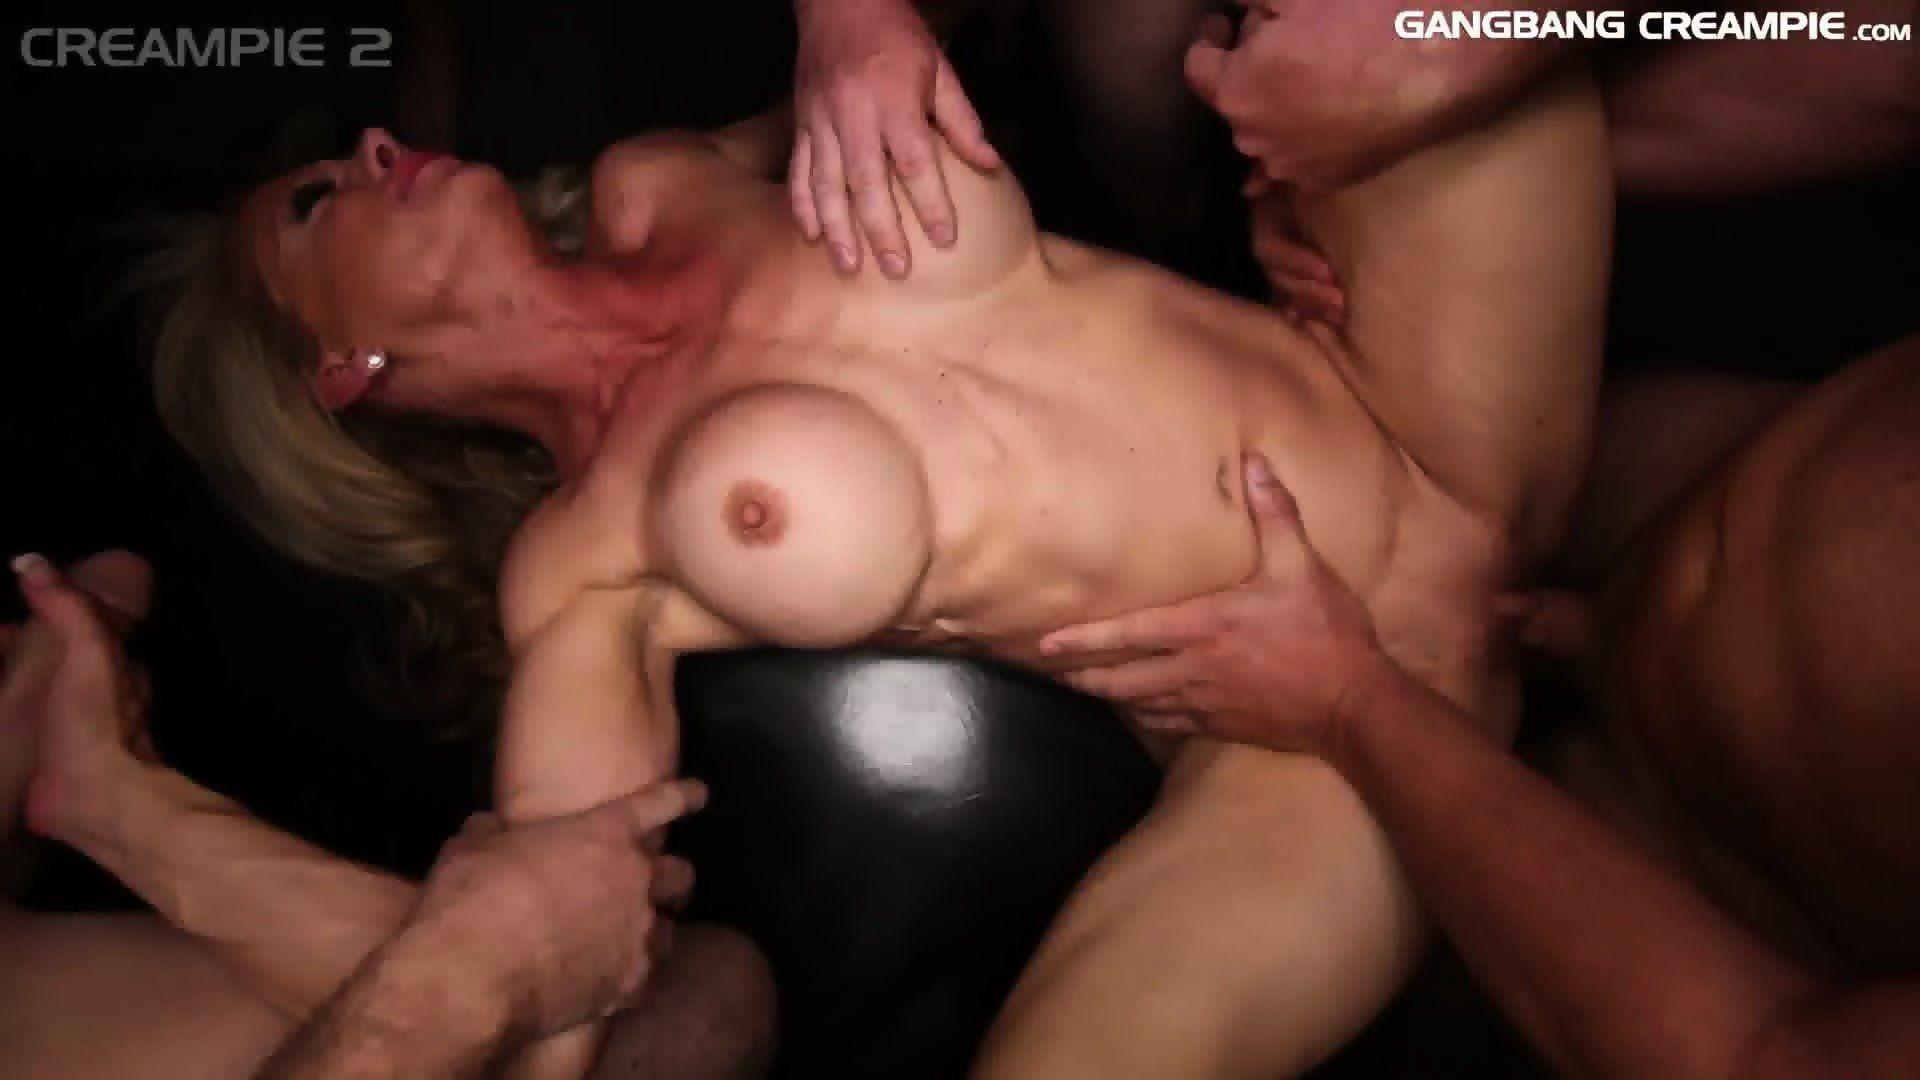 Cream pie mature audience